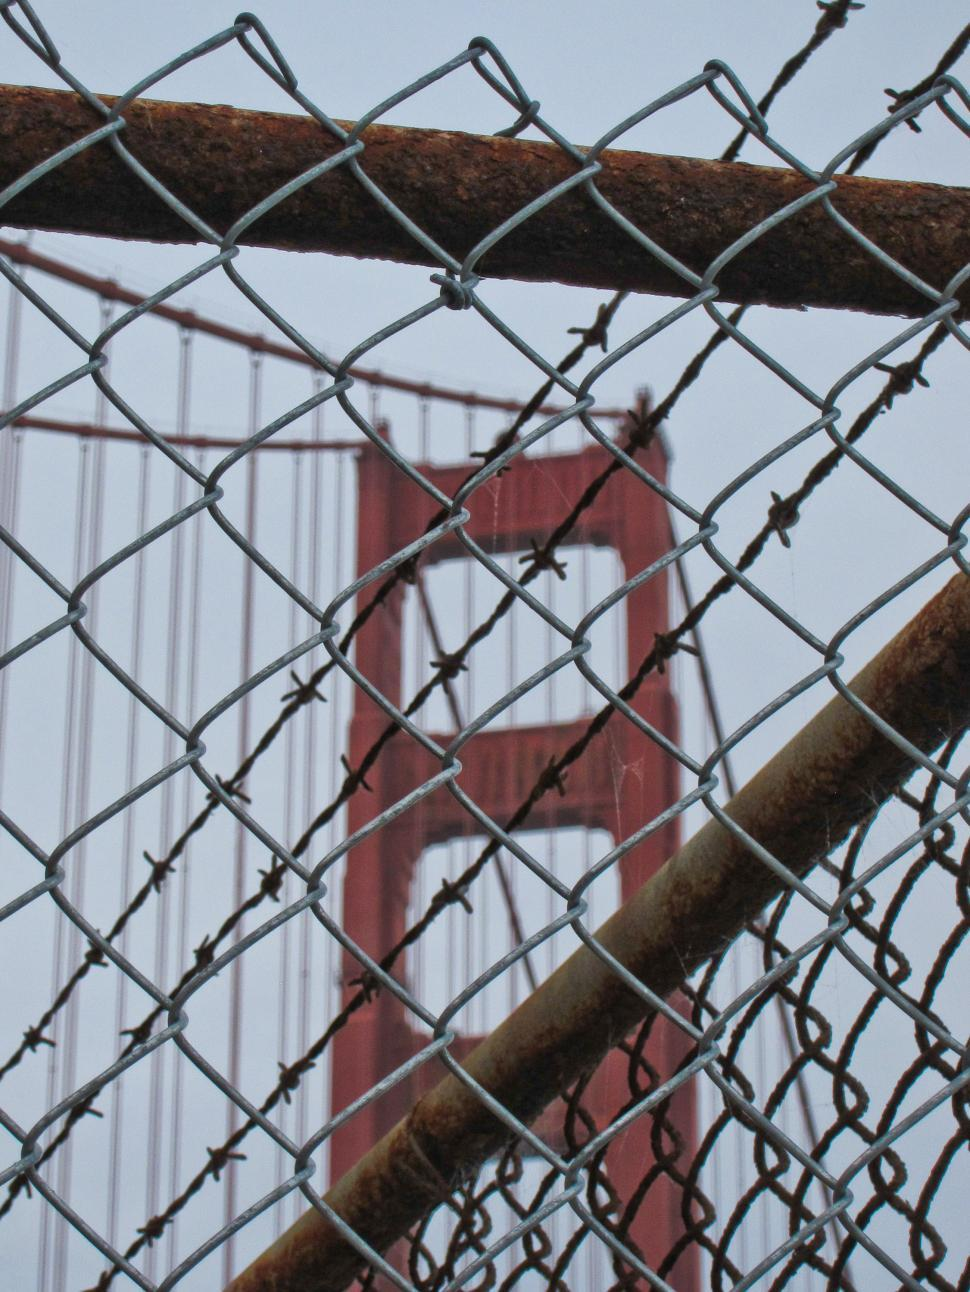 Download Free Stock HD Photo of Secure Golden Gate Bridge Online